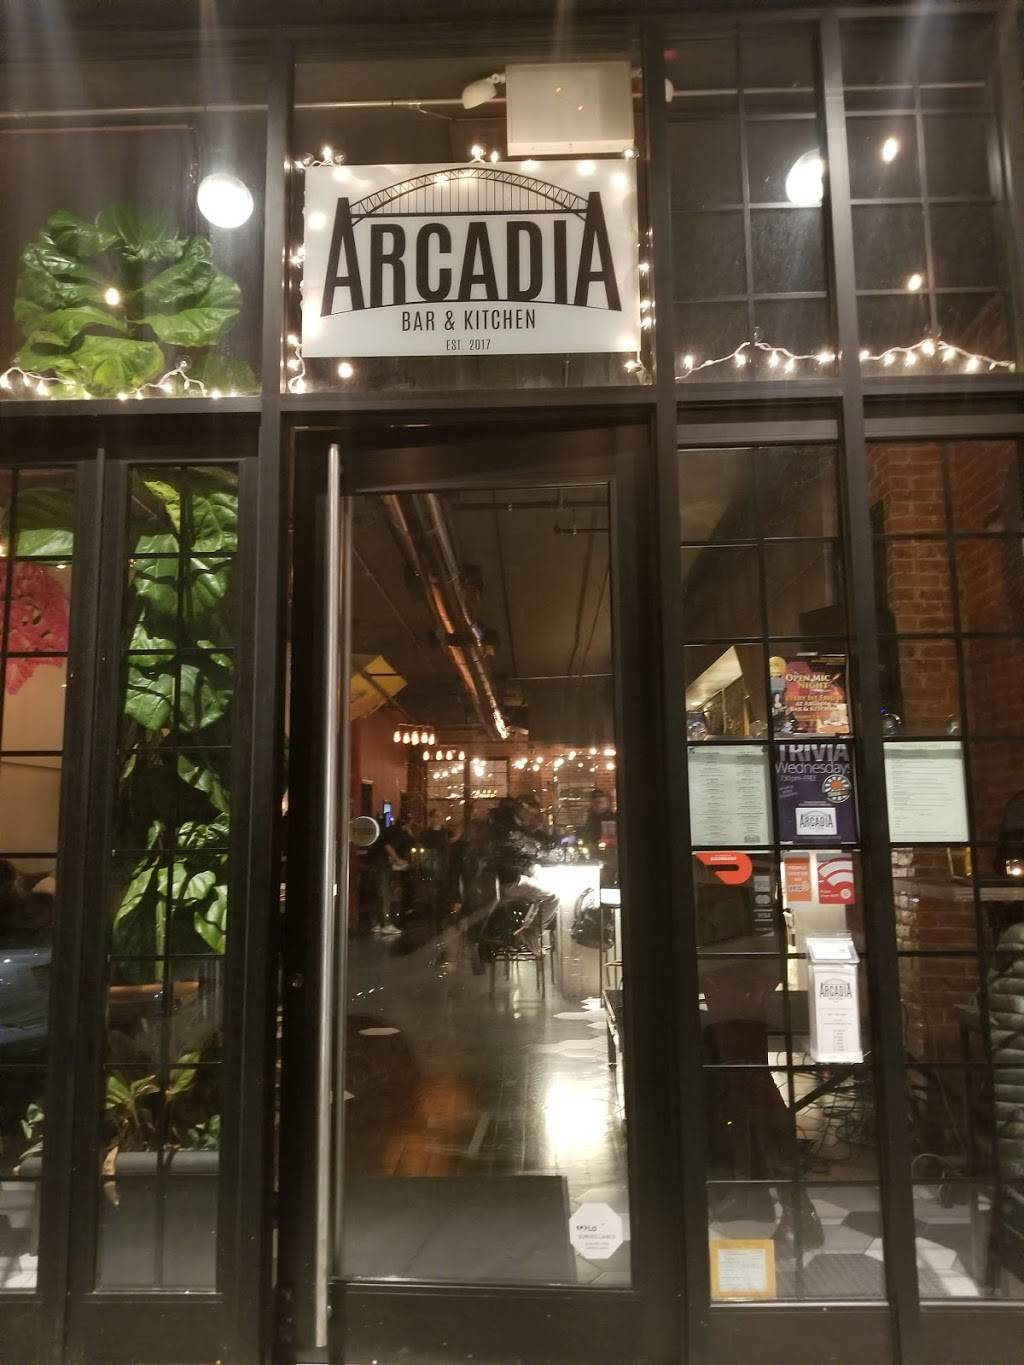 Arcadia Bar and Kitchen | restaurant | 12-21 Astoria Blvd, Astoria, NY 11102, USA | 3477306181 OR +1 347-730-6181